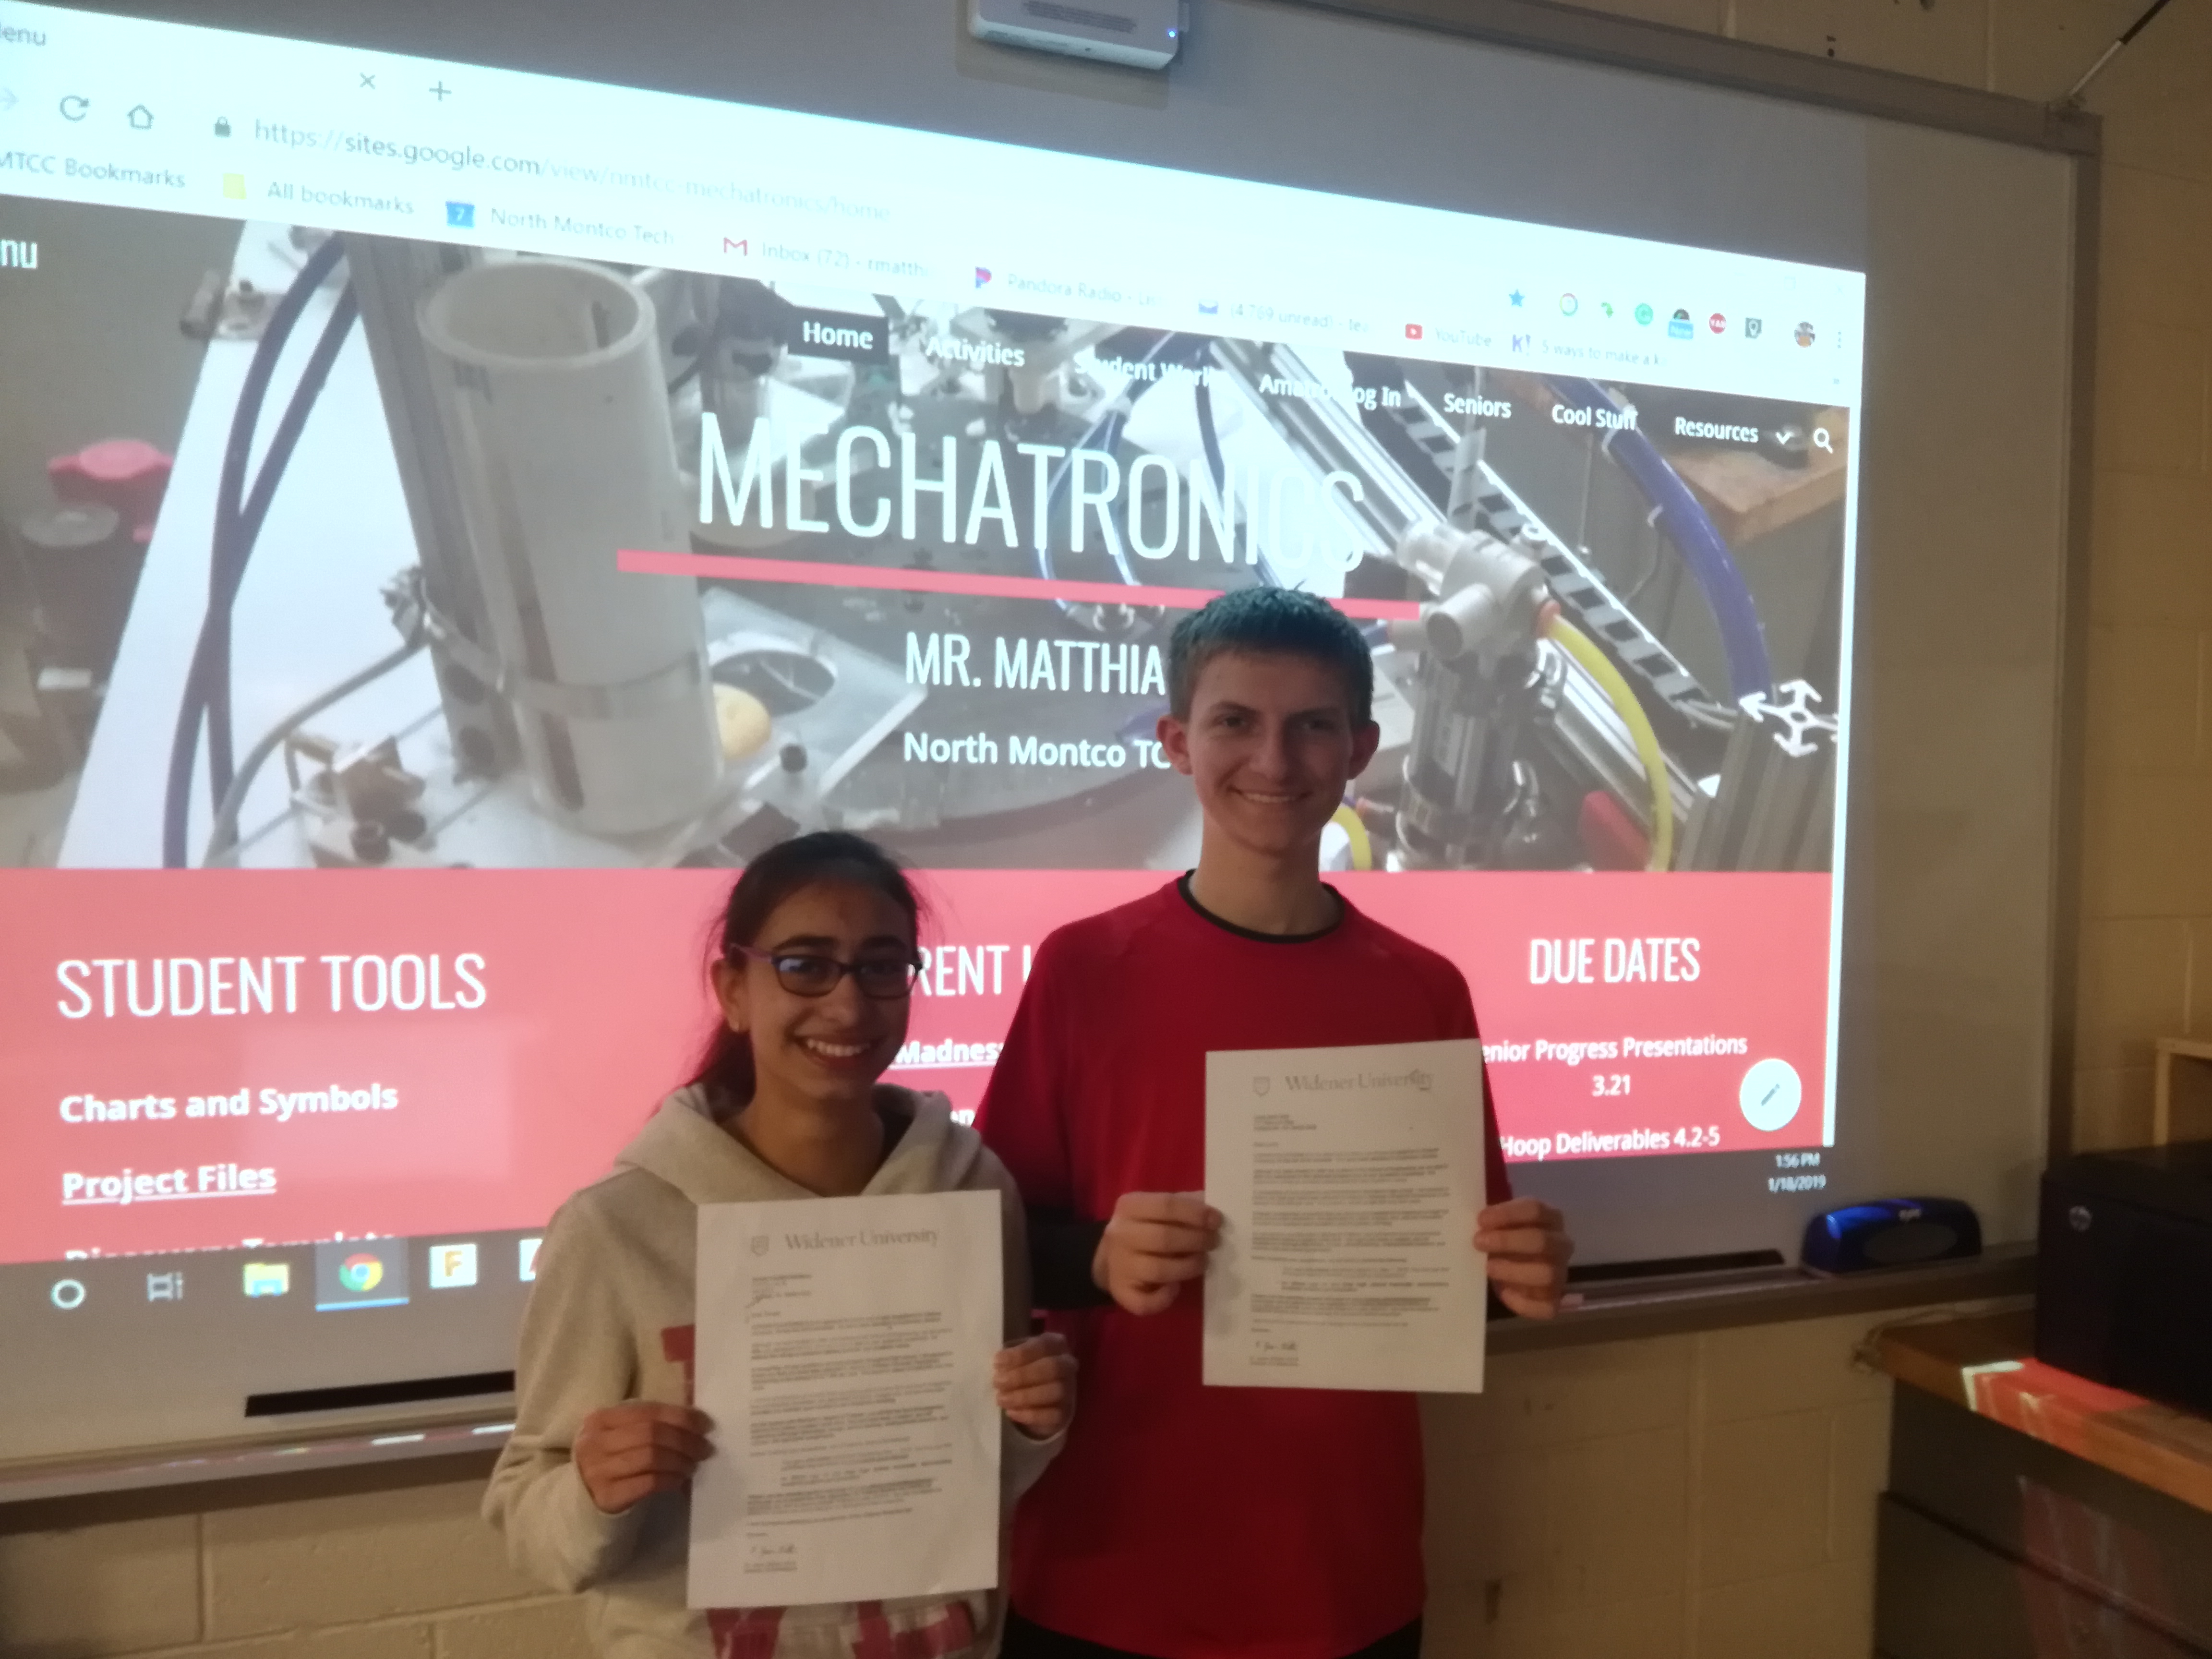 $196K awarded to two mechatronics students at NMTCC in Lansdale